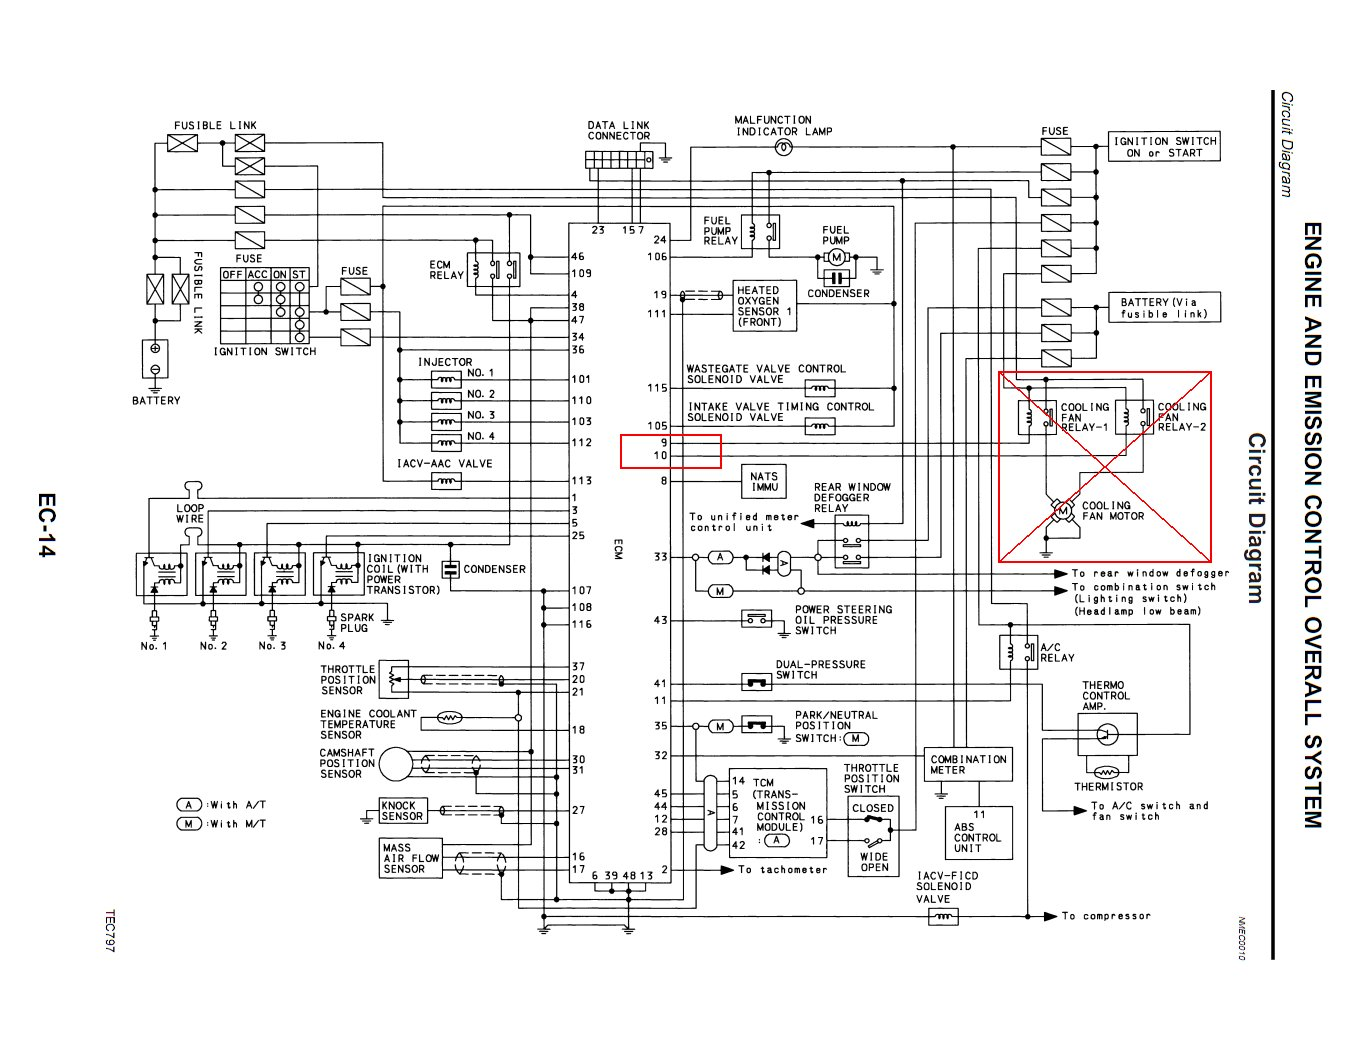 s15 ecu fan 02 100 [ 180sx wiring diagram ] 180sx 2jzgte swap wiring harness sr20 wiring diagram at edmiracle.co